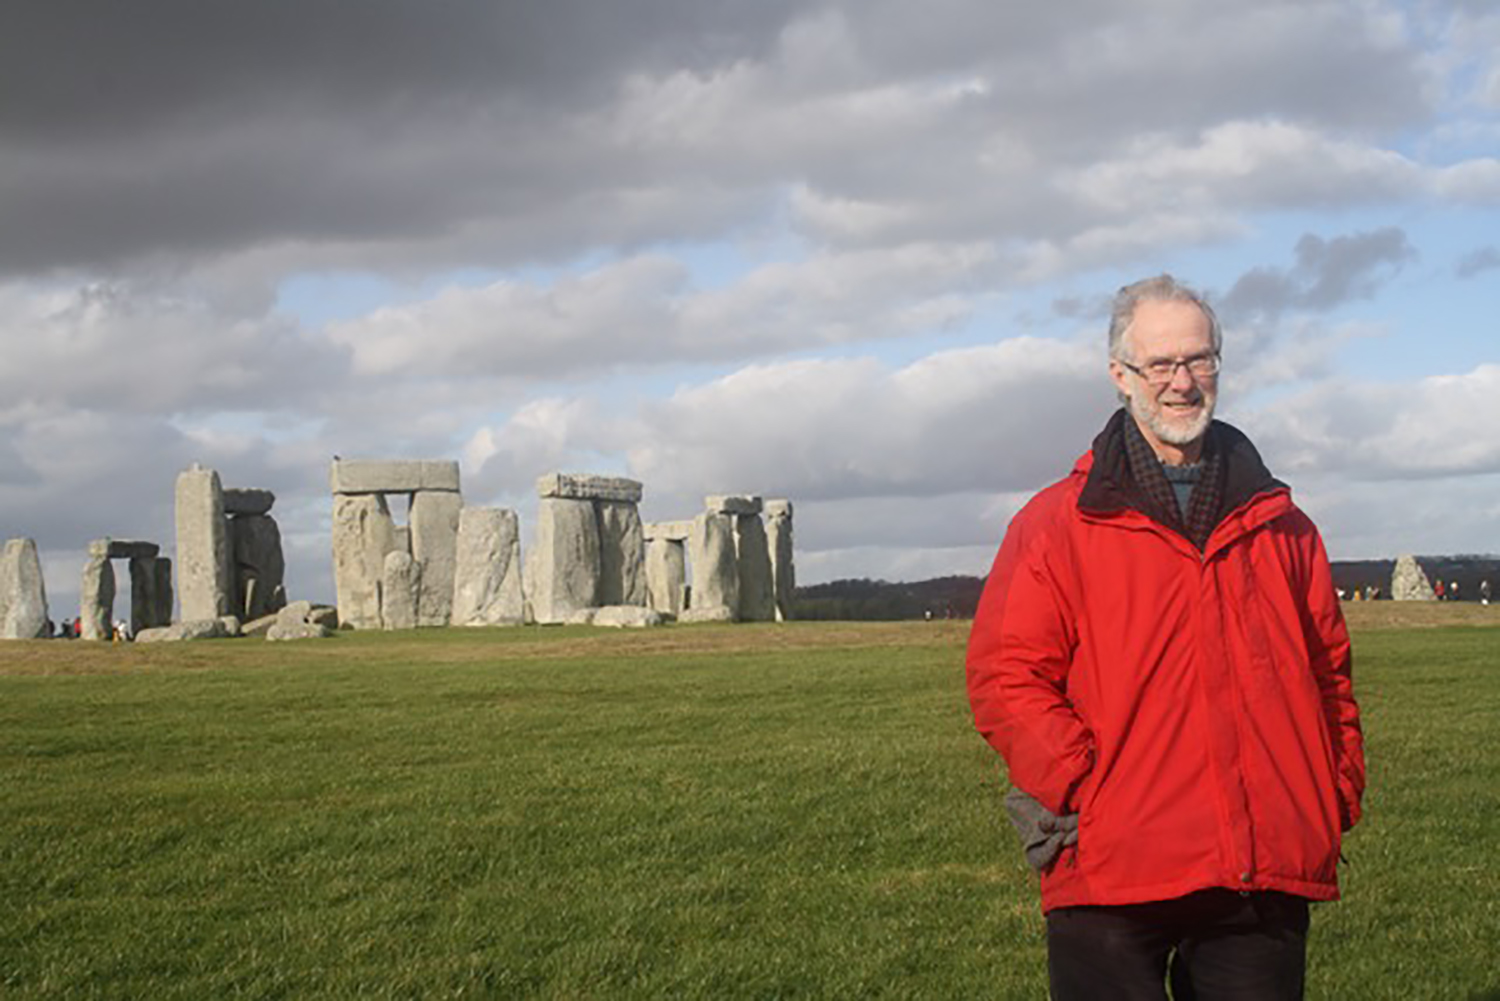 Crispin Paine at Stonehenge, a prehistoric monument in Wiltshire, England.